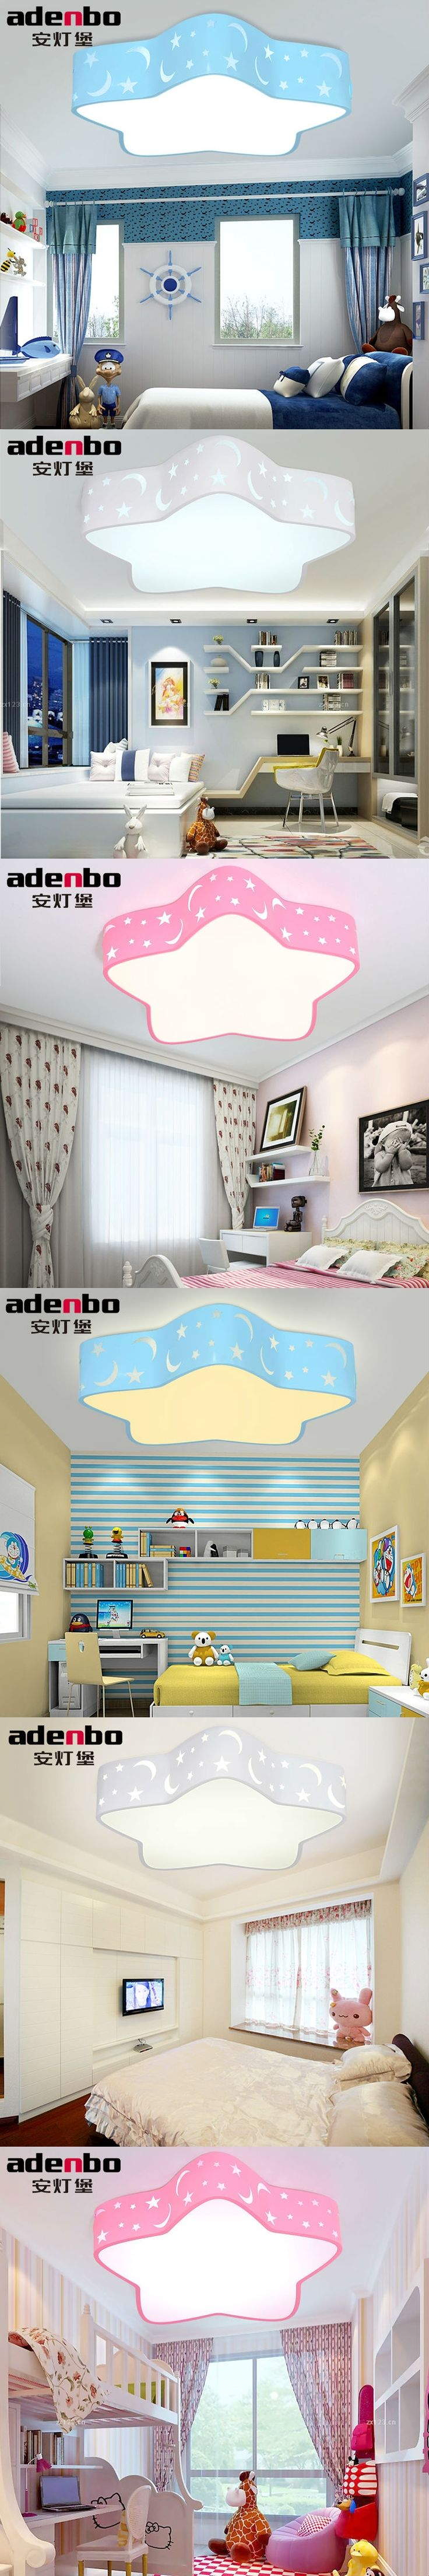 Remote Control Star Children's Lamp Bedroom LED Ceiling Lights White Pink And Blue 24W SMD Electrodeless Dimmable Lighting